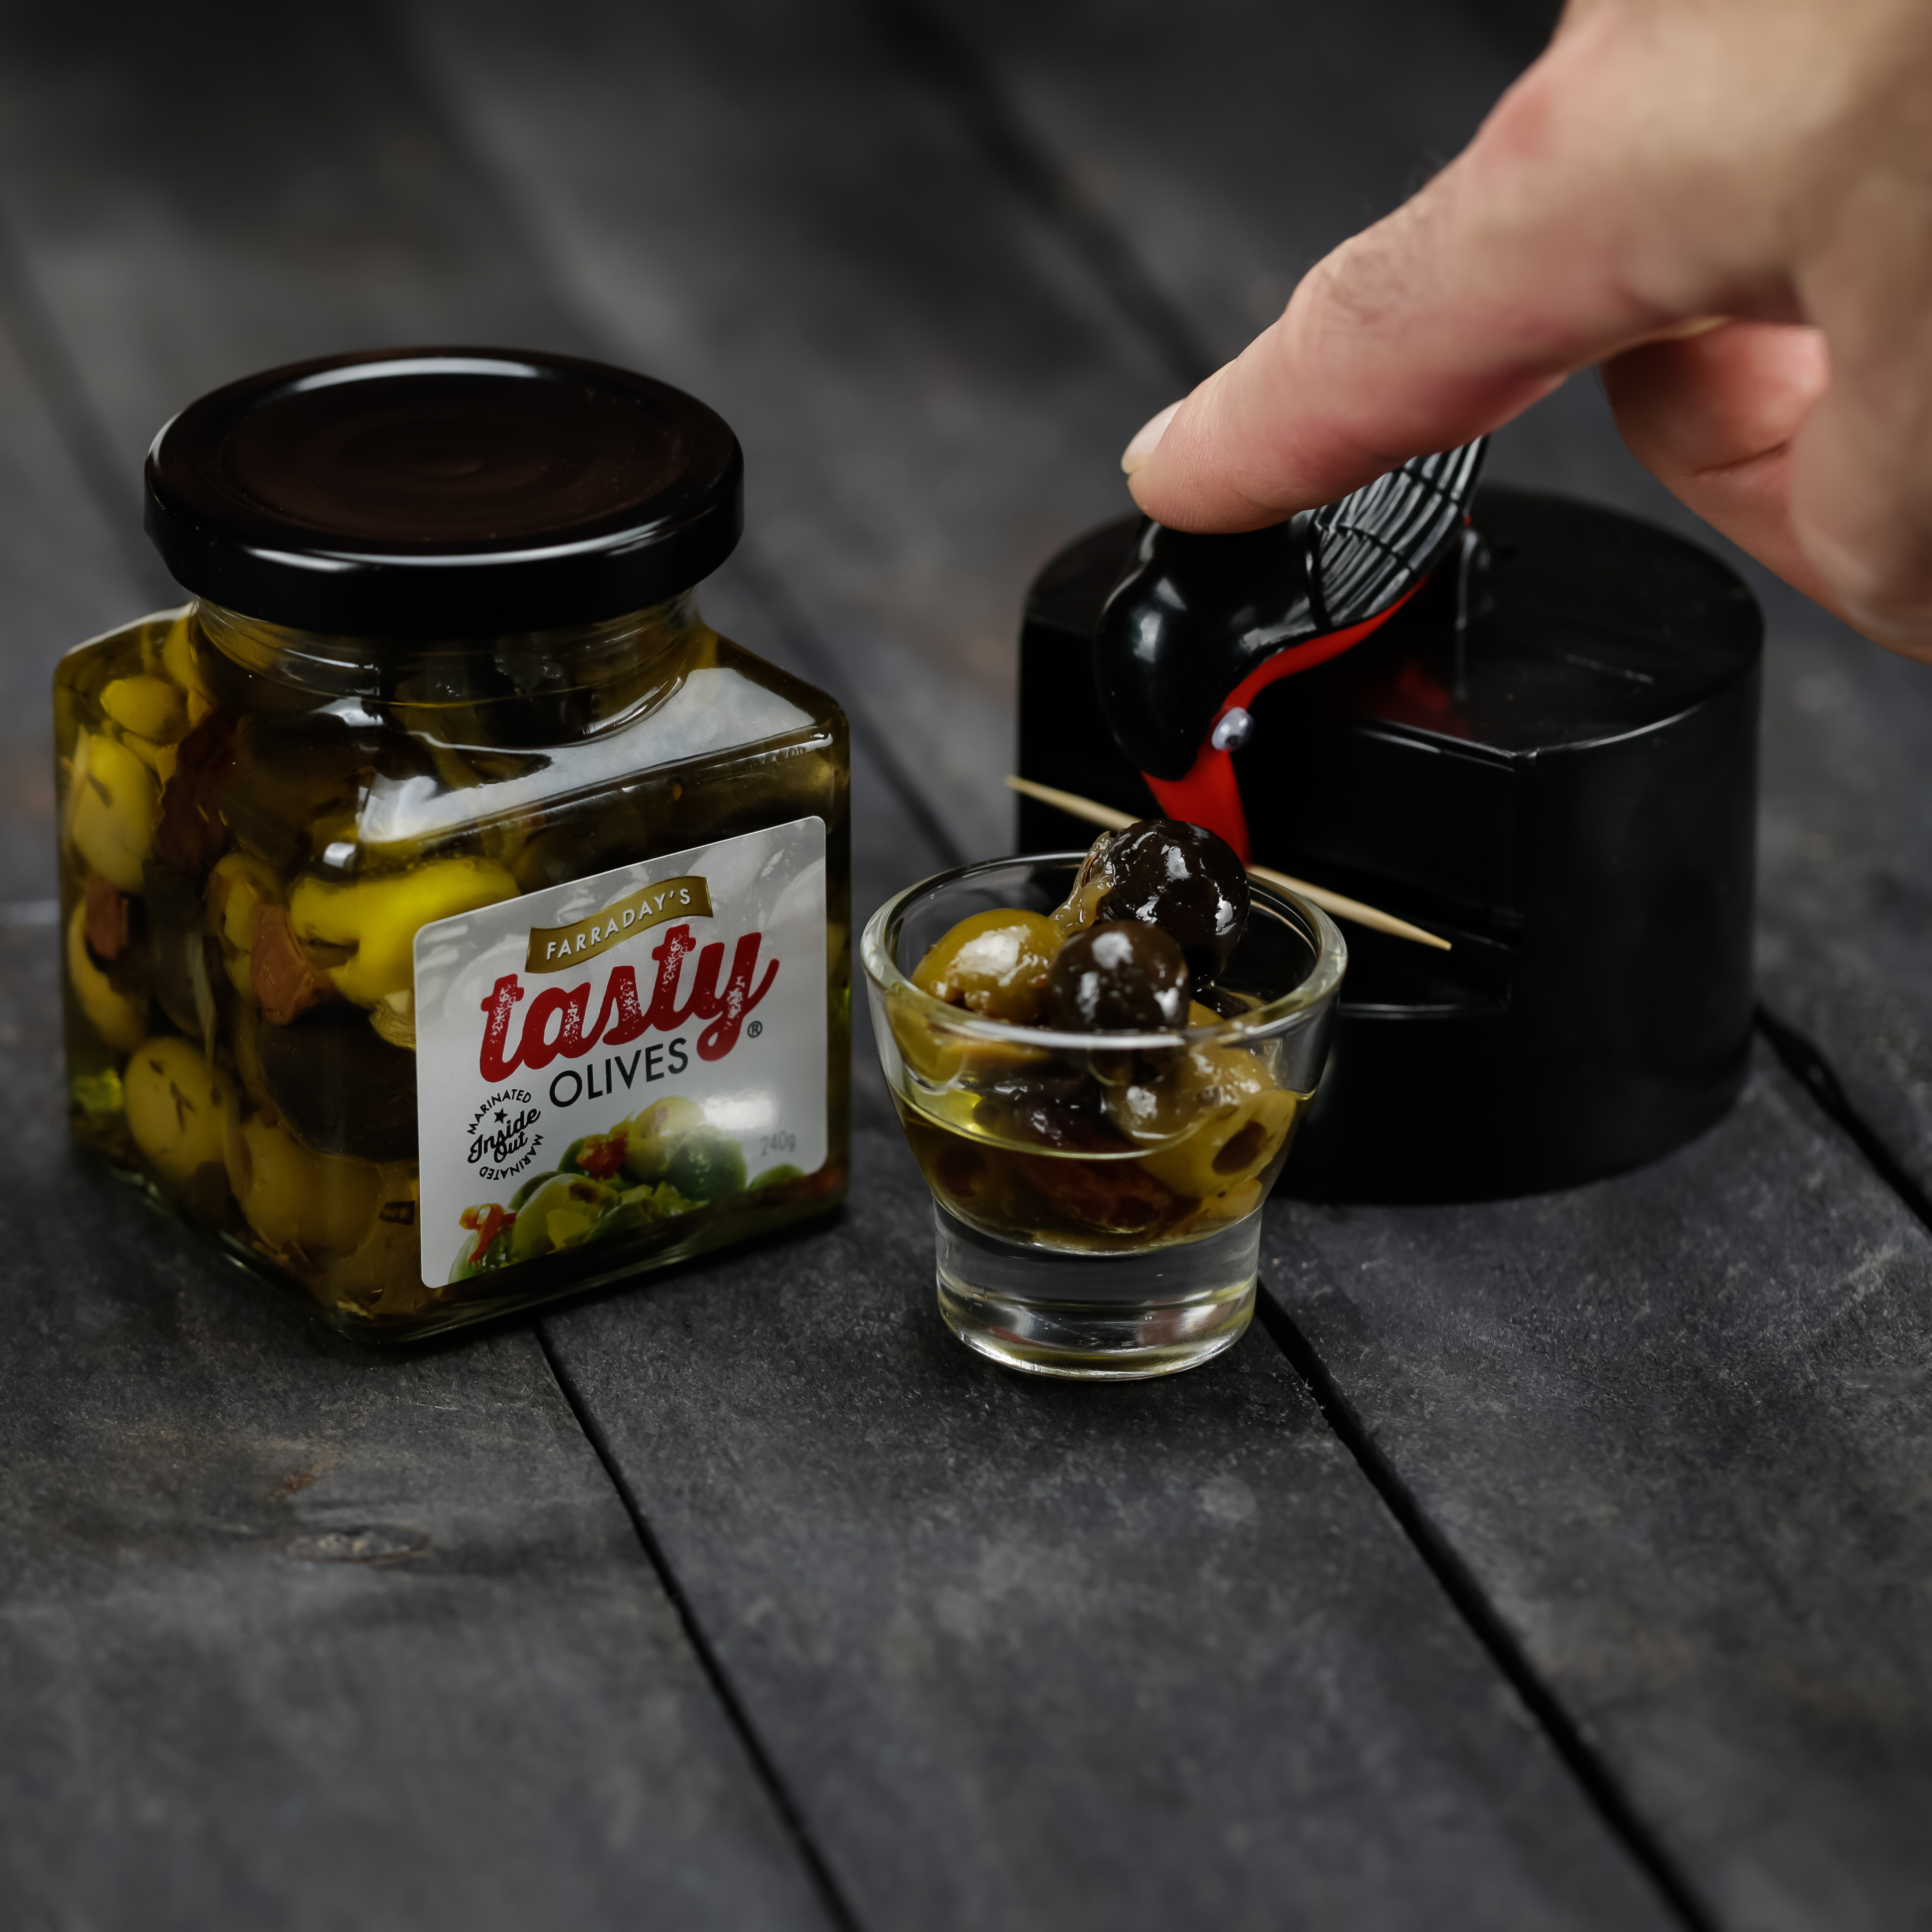 Novelty Toothpicks Tasty Olives And Bird Toothpick Dispenser Stay Tasty